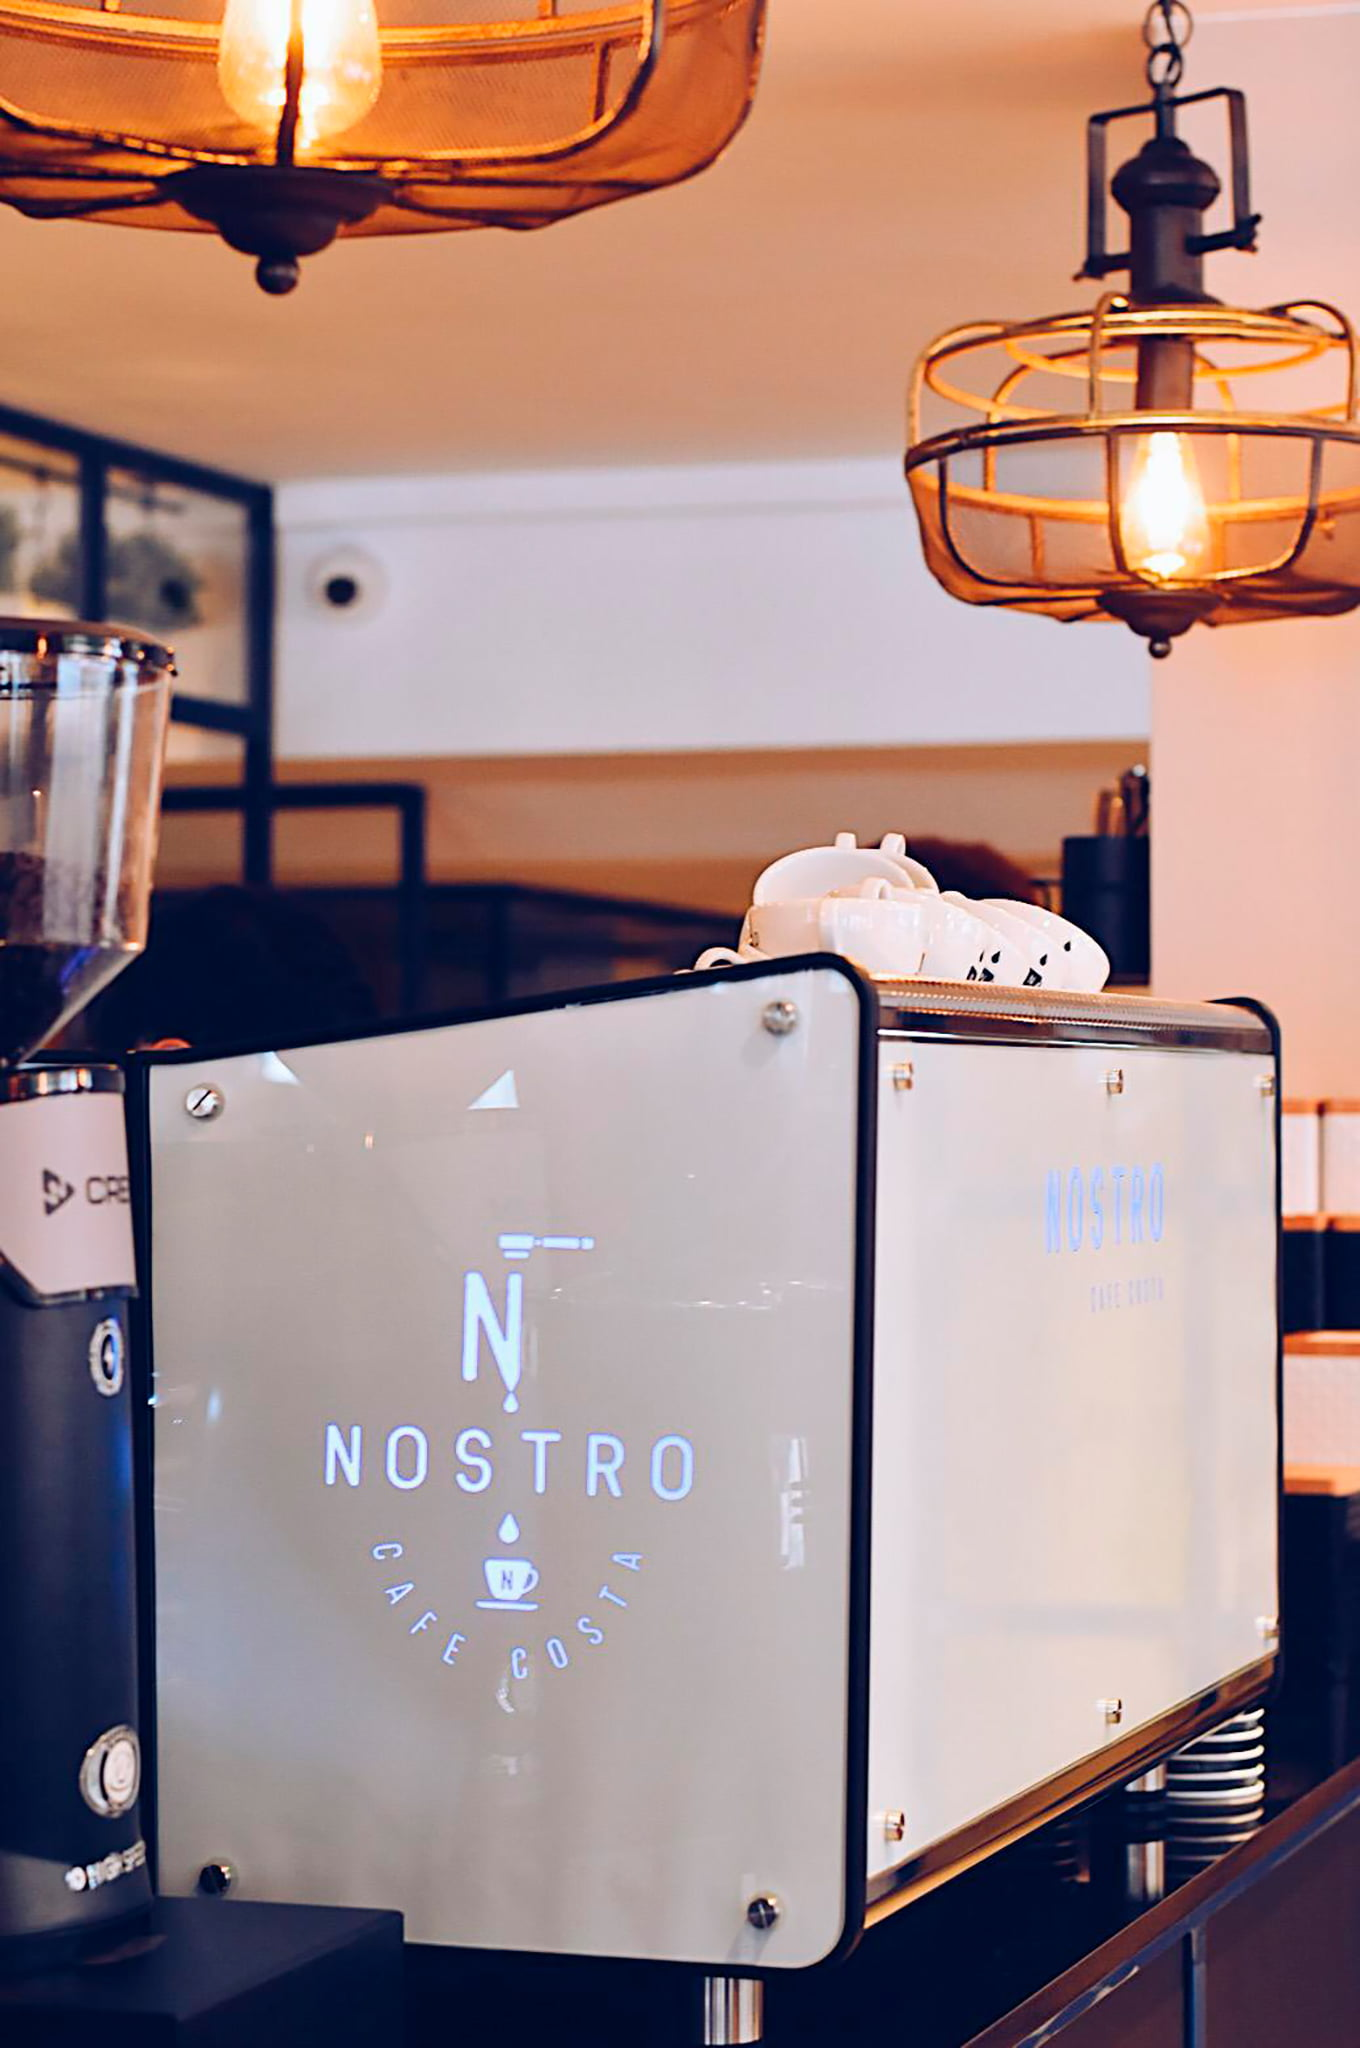 Nueva Coffee Shop – Nostro Café Costa